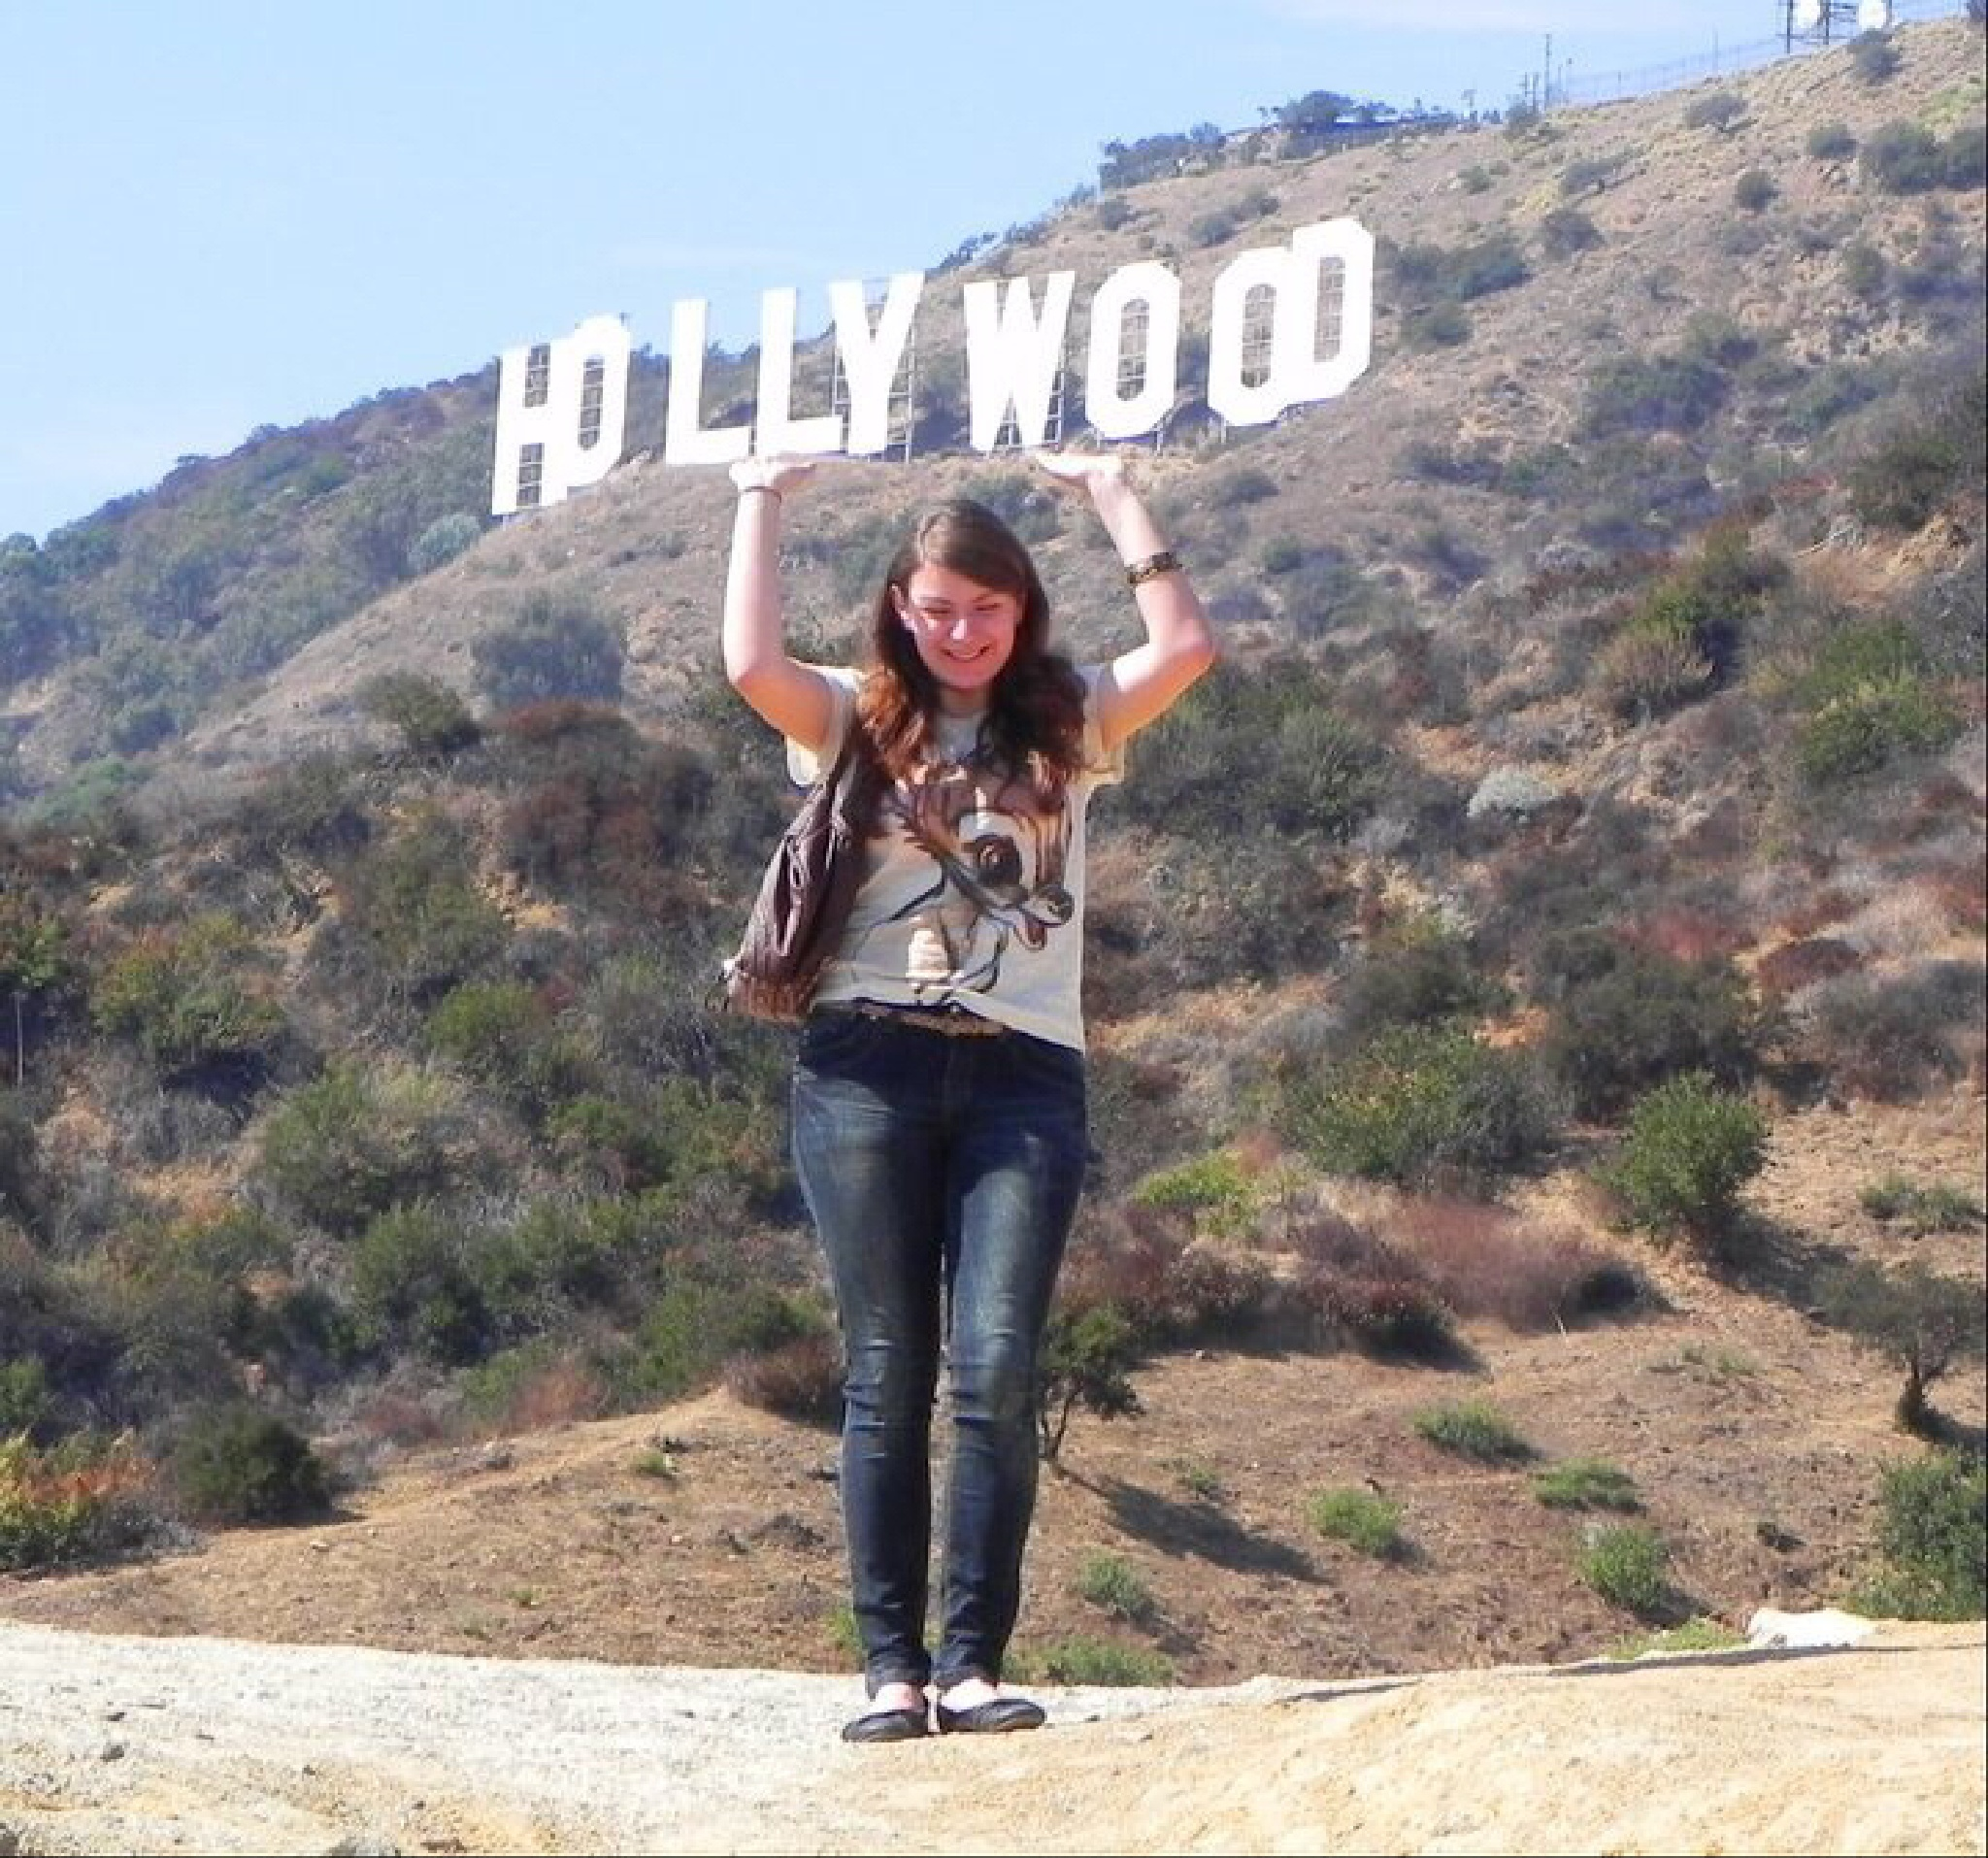 Hollywood baby by Peter Stowell